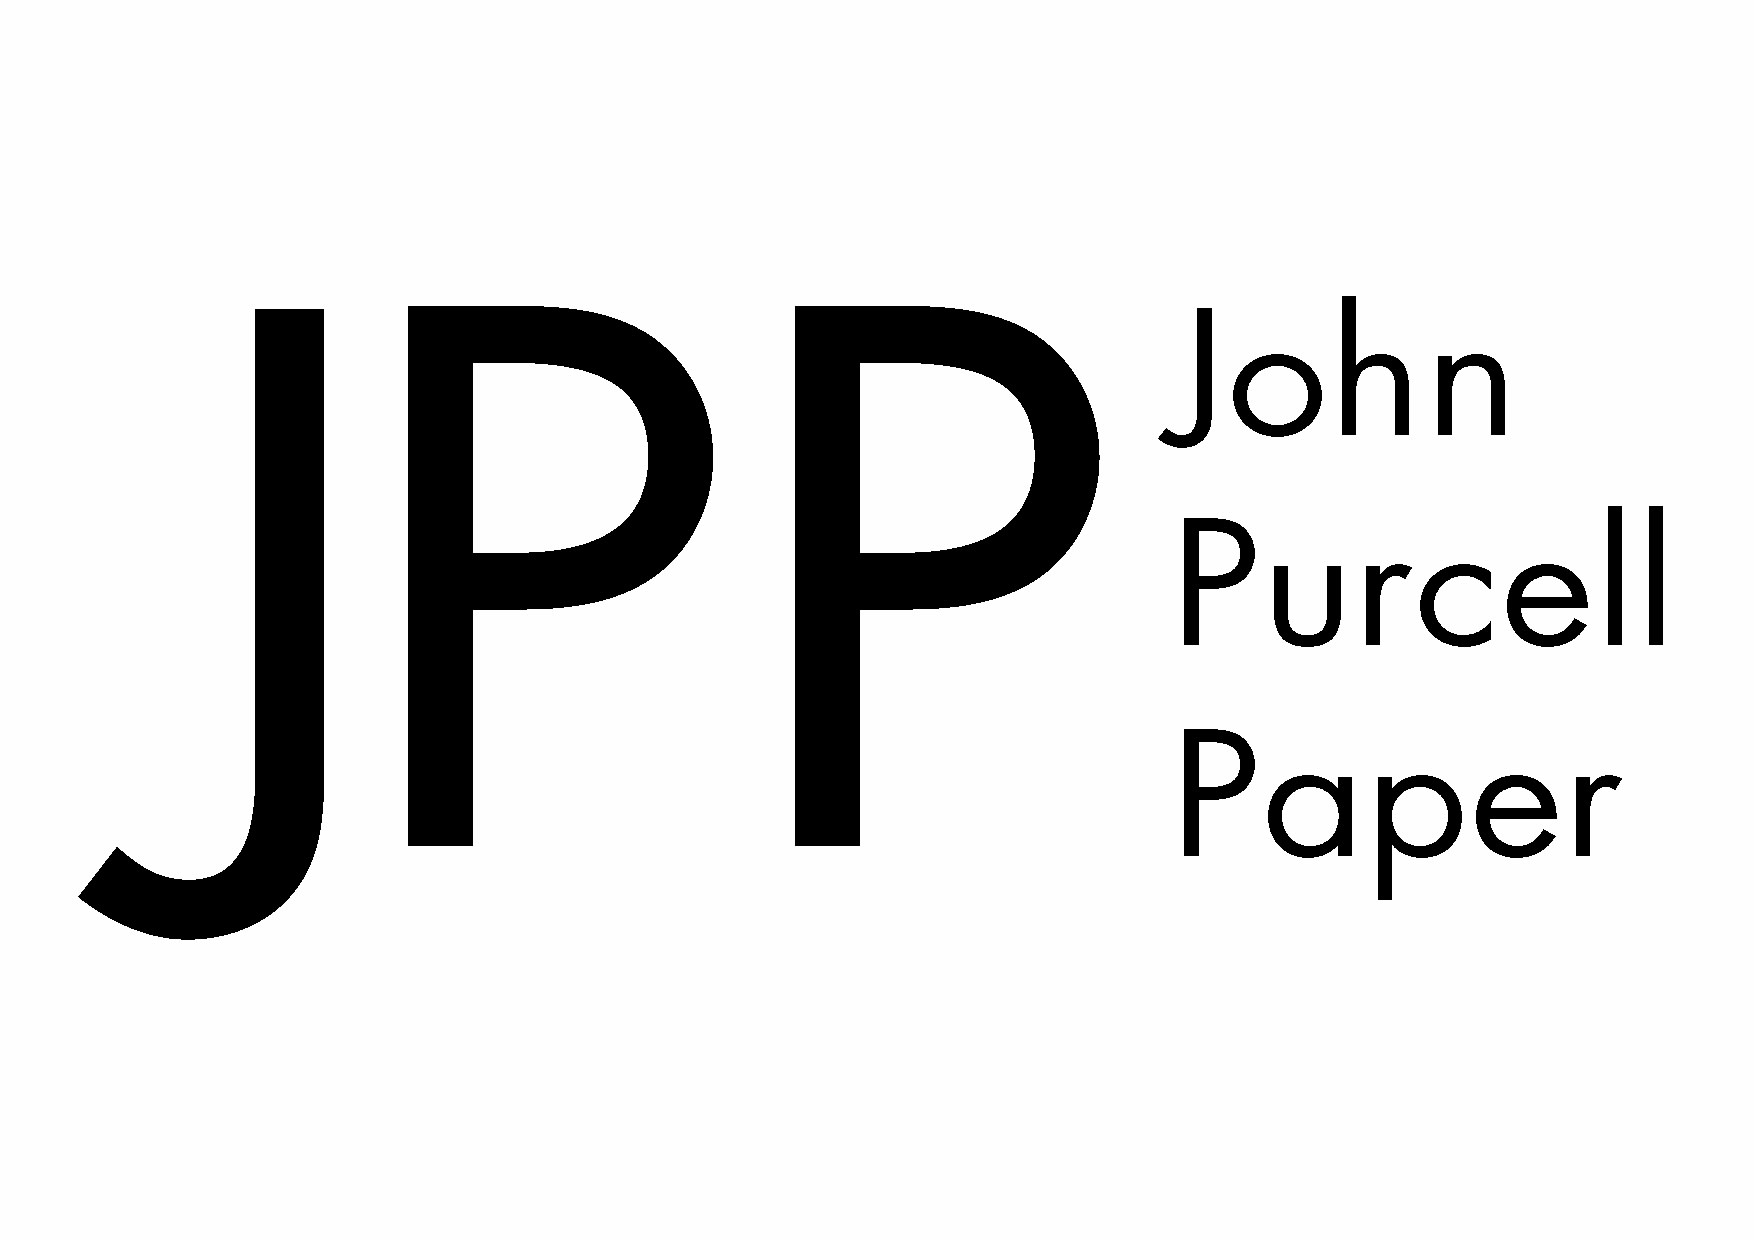 The John Purcell Paper Award